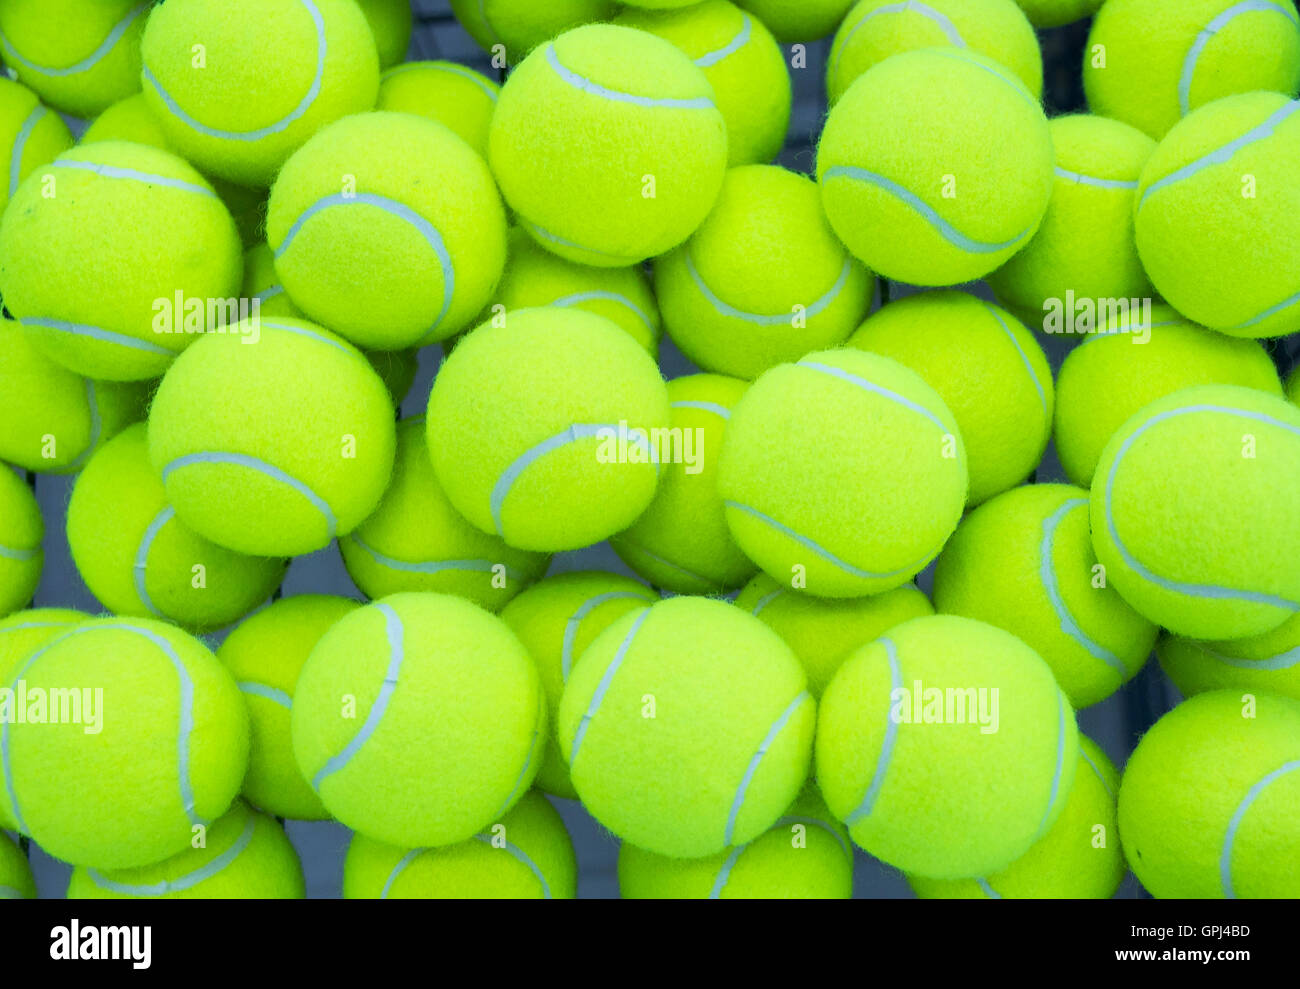 046b9c0bf9e9 lot of bright yellow tennis balls as a background Stock Photo ...